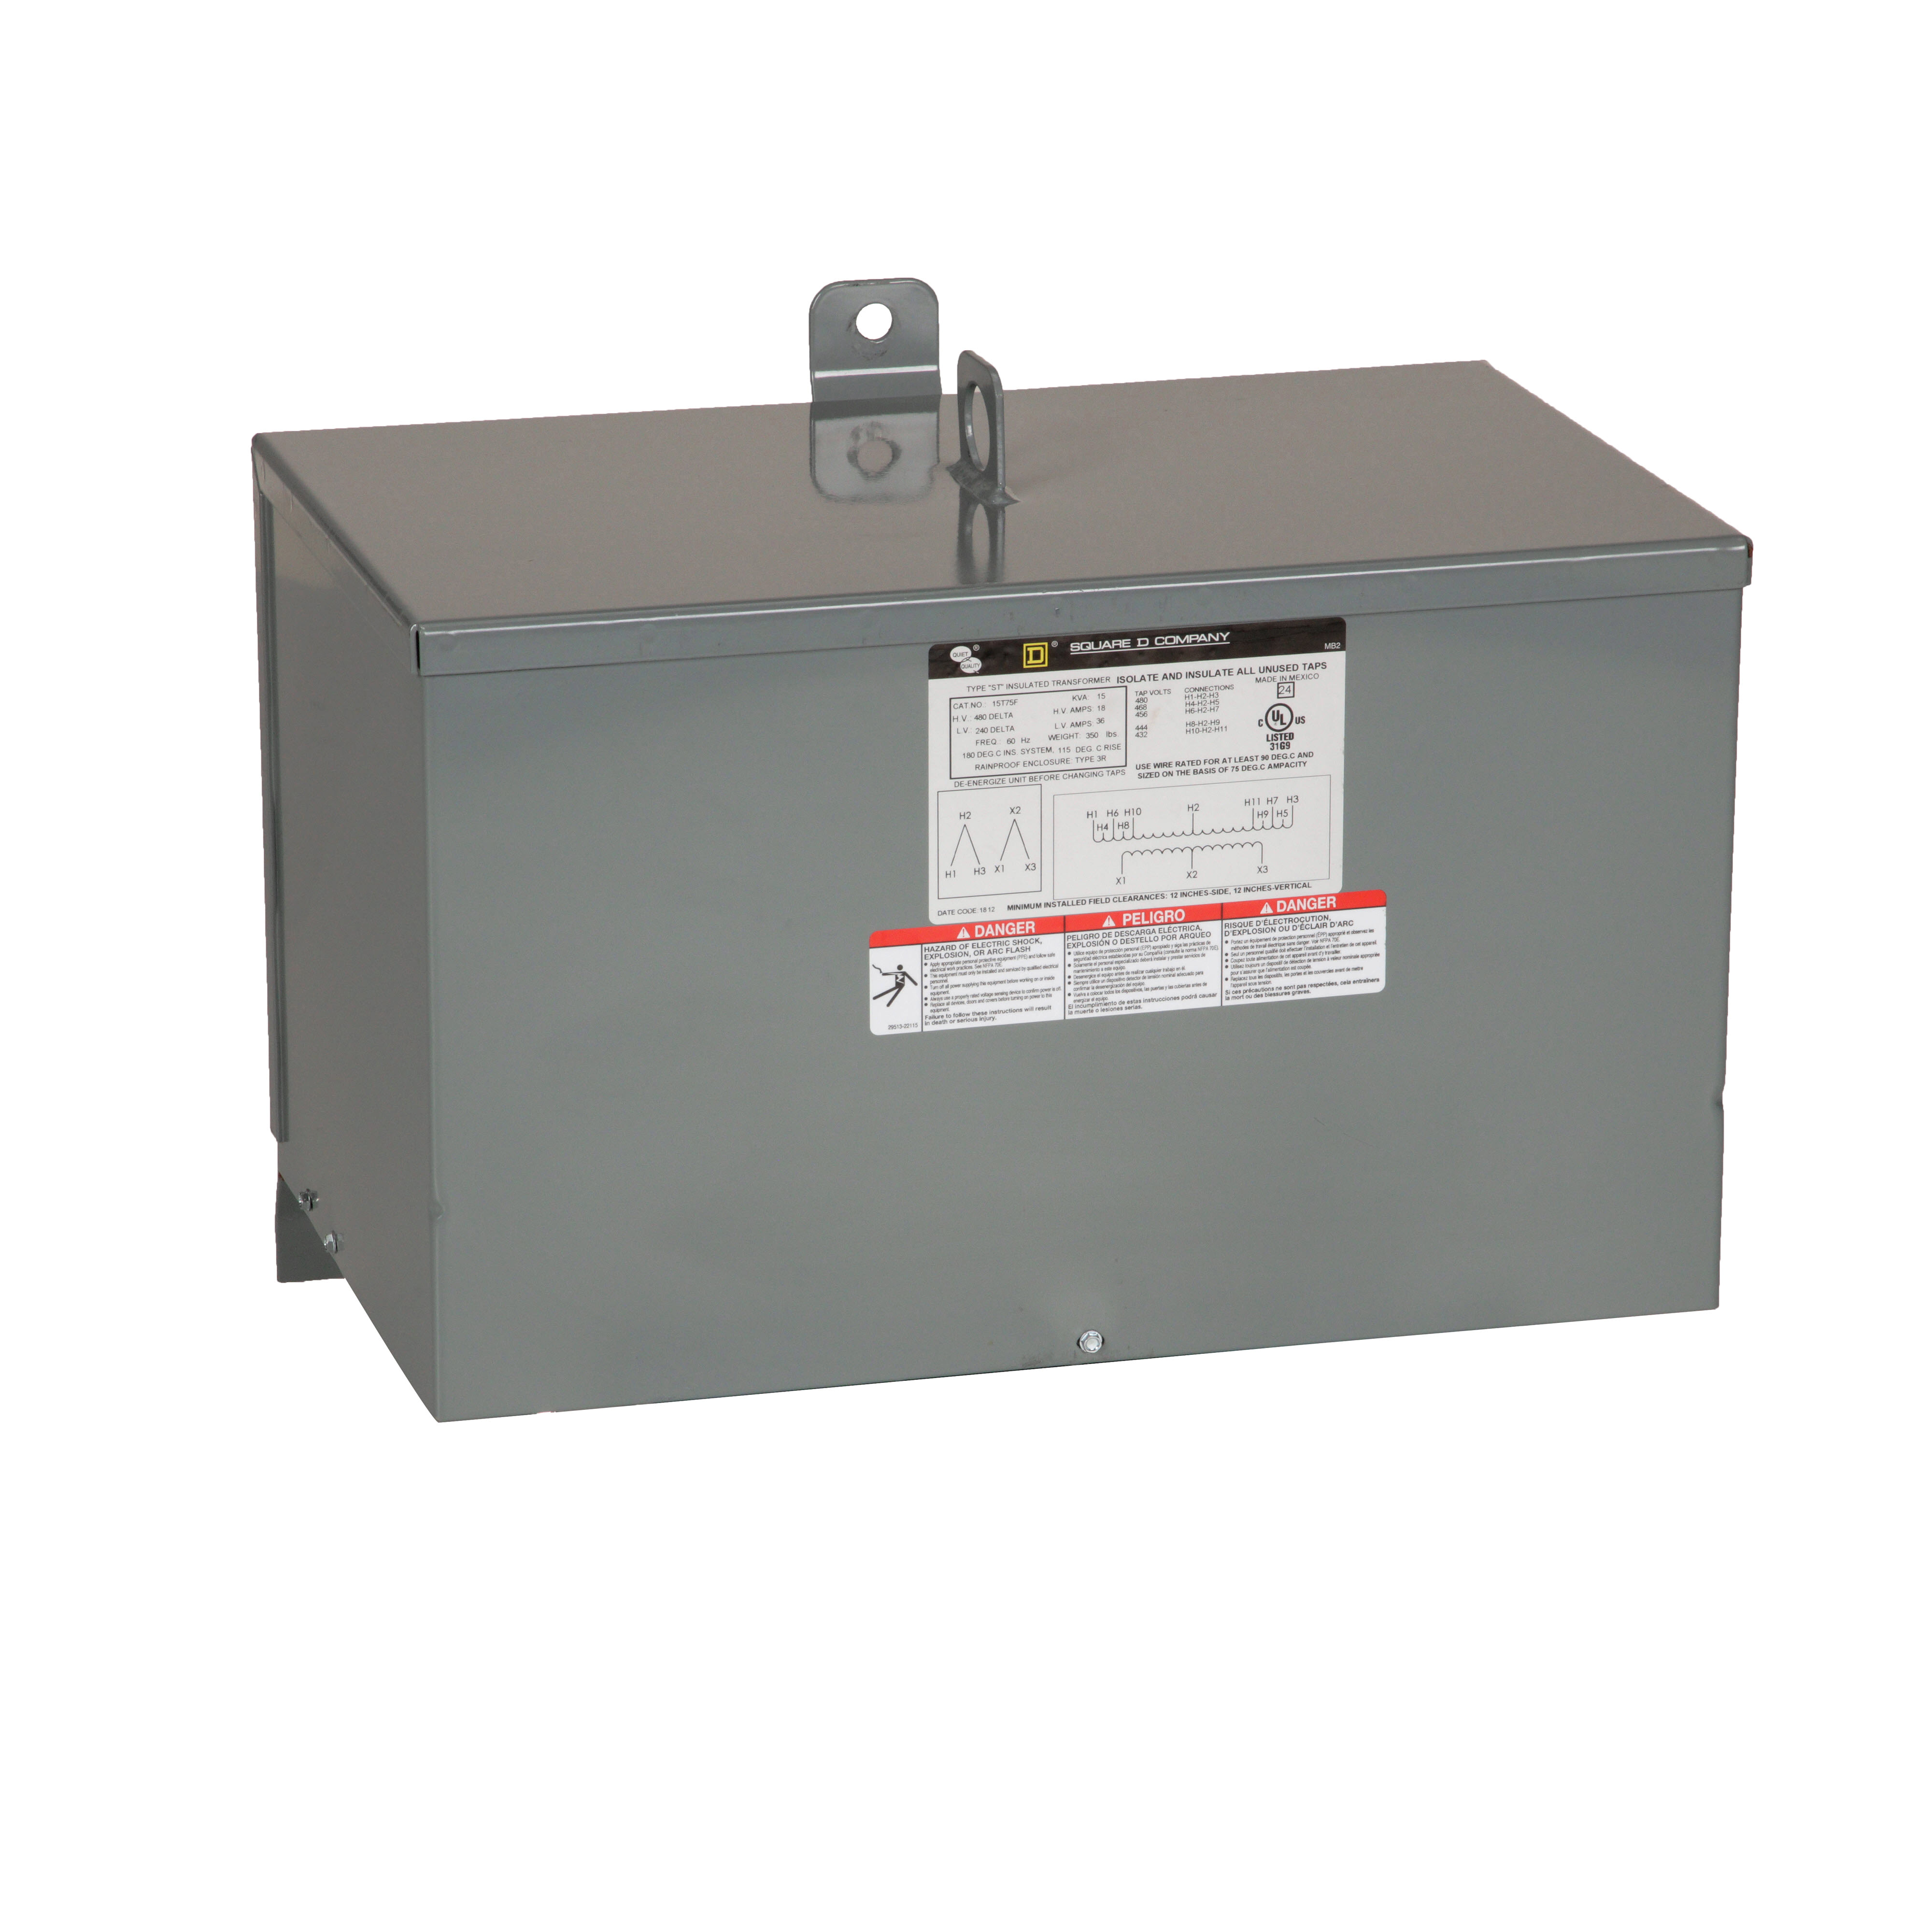 Square-D 15T2FSS 15 kVa 480 VAC Delta Primary 208 Star/120 VAC Secondary Dry Type General Purpose Transformer